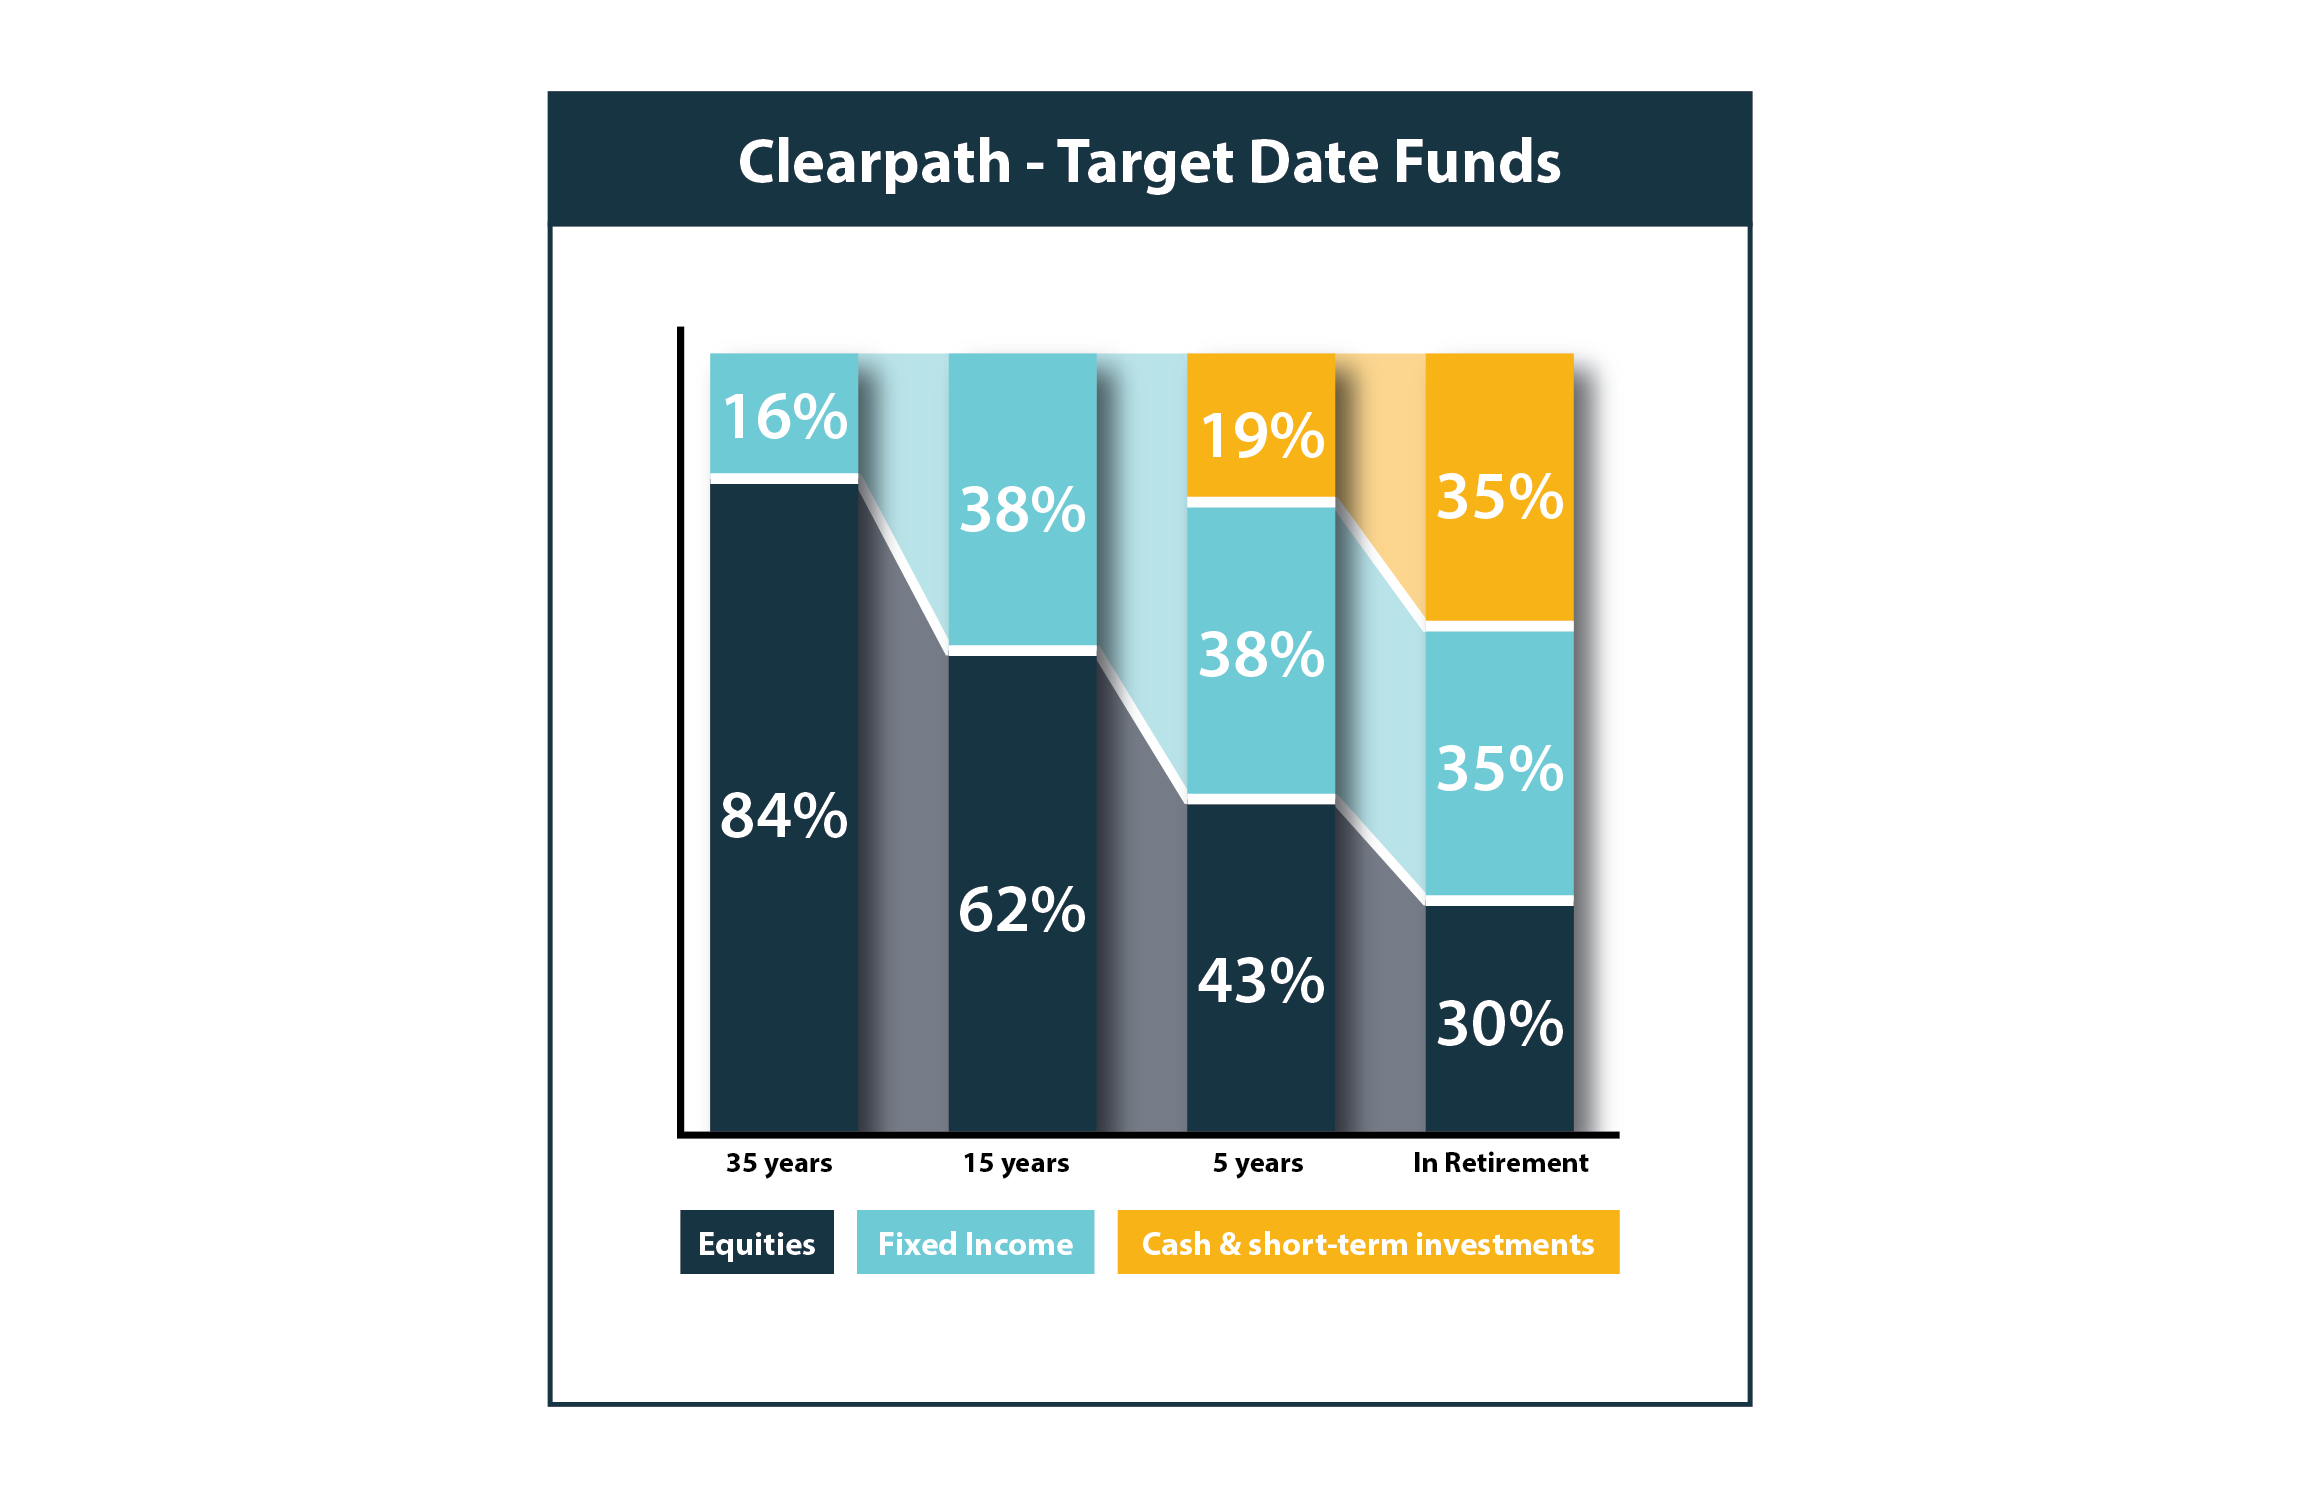 Clearpath target date funds